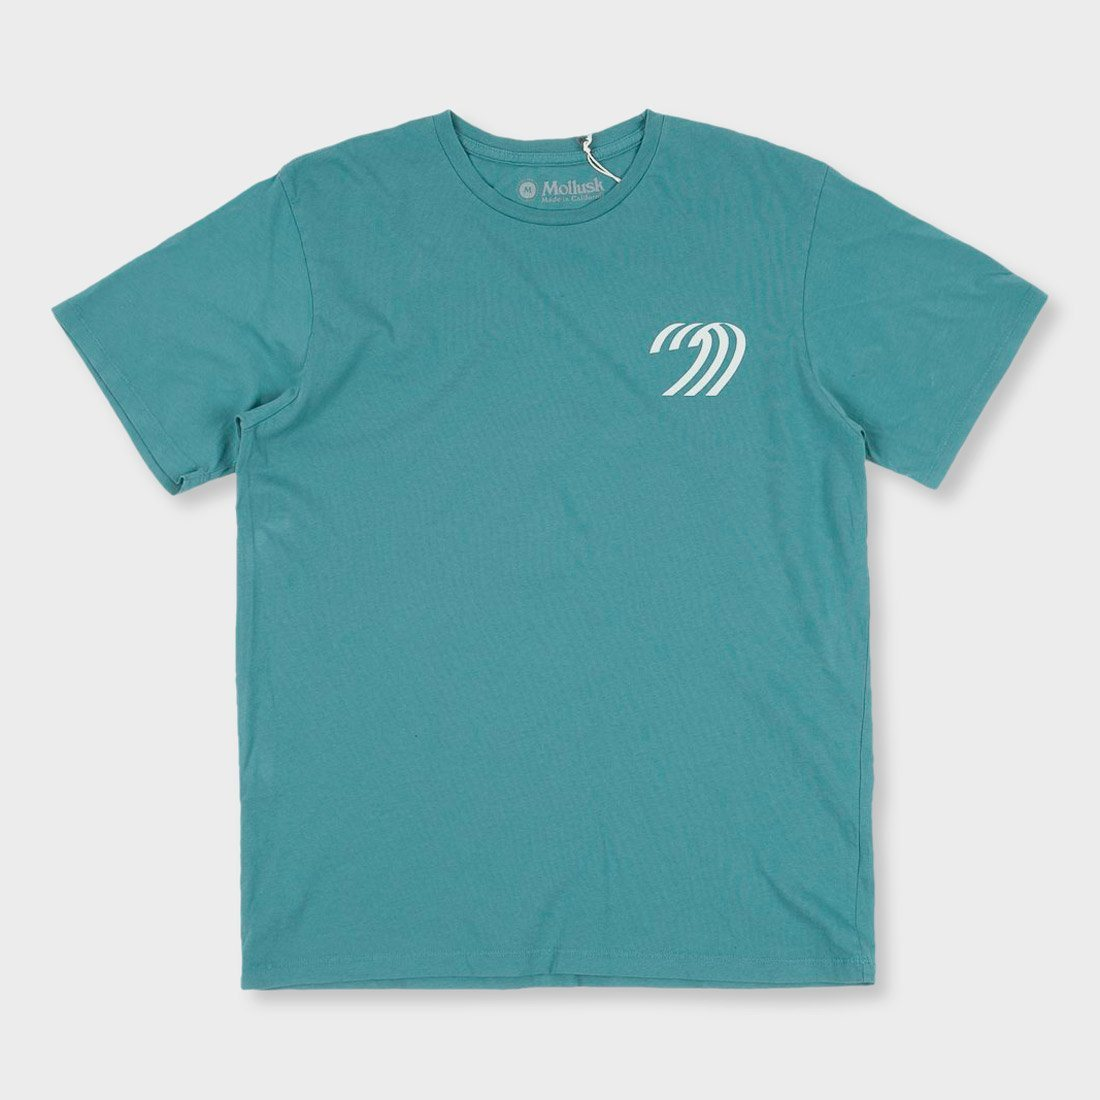 Mollusk Team T-Shirt Washed Sapphire